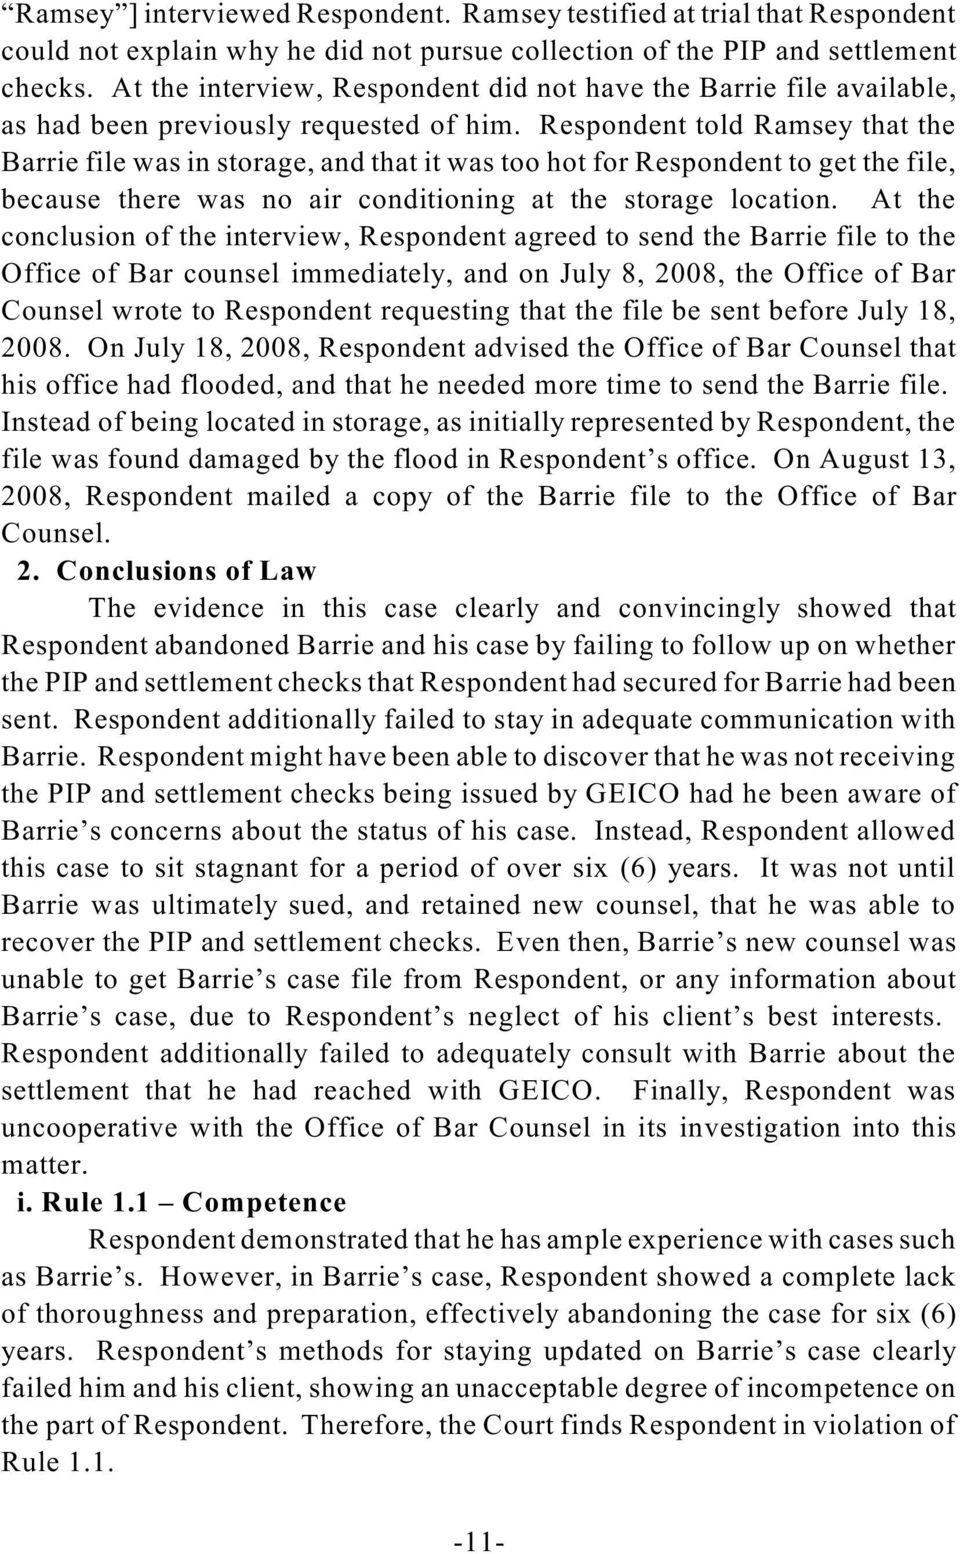 Respondent told Ramsey that the Barrie file was in storage, and that it was too hot for Respondent to get the file, because there was no air conditioning at the storage location.